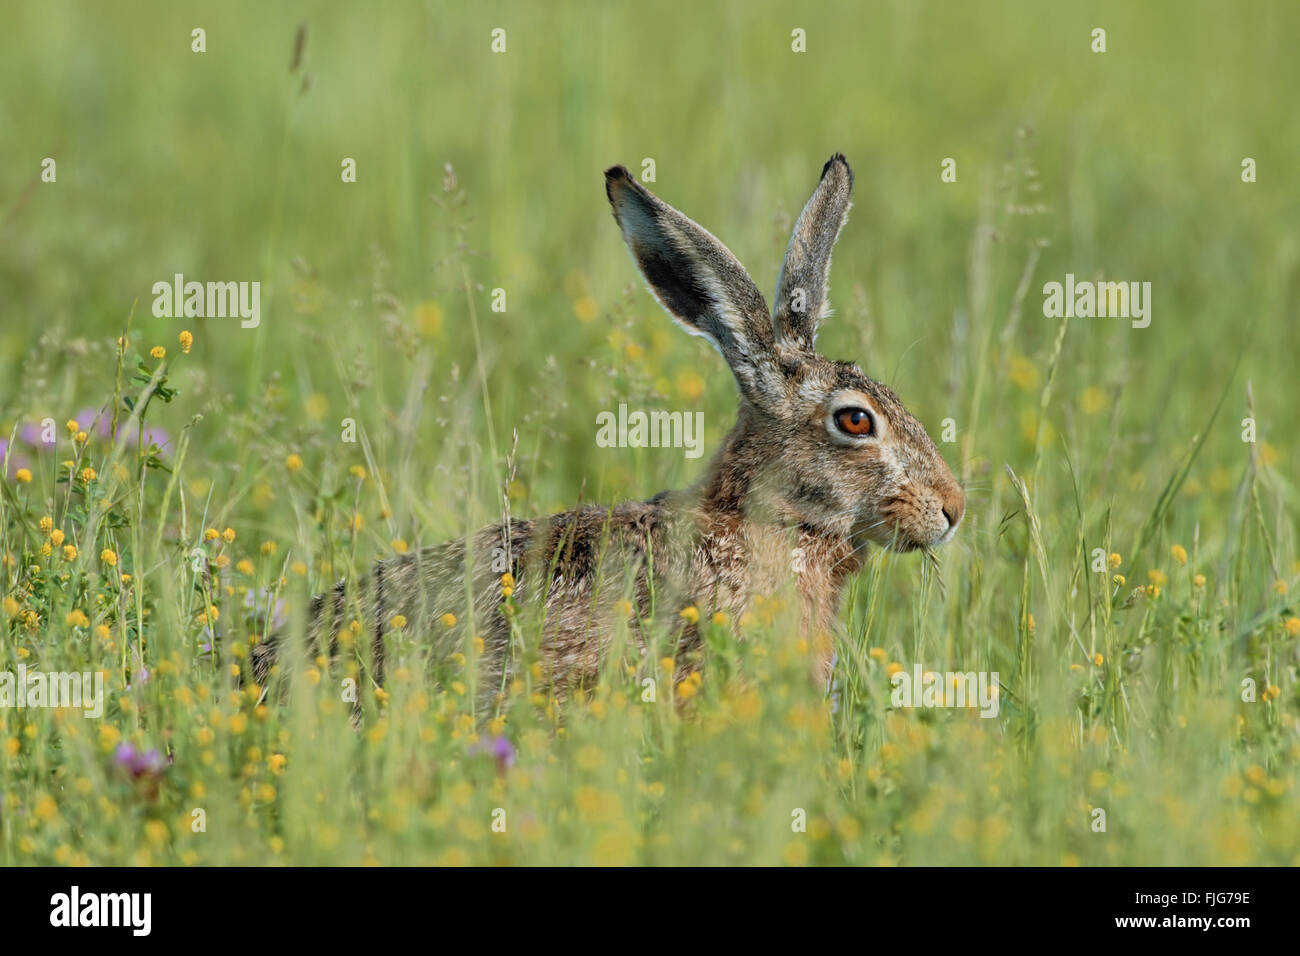 Brown Hare / European Hare / Feldhase ( Lepus europaeus ), adult, sits in a meadow with flowers, feeding on grass, - Stock Image